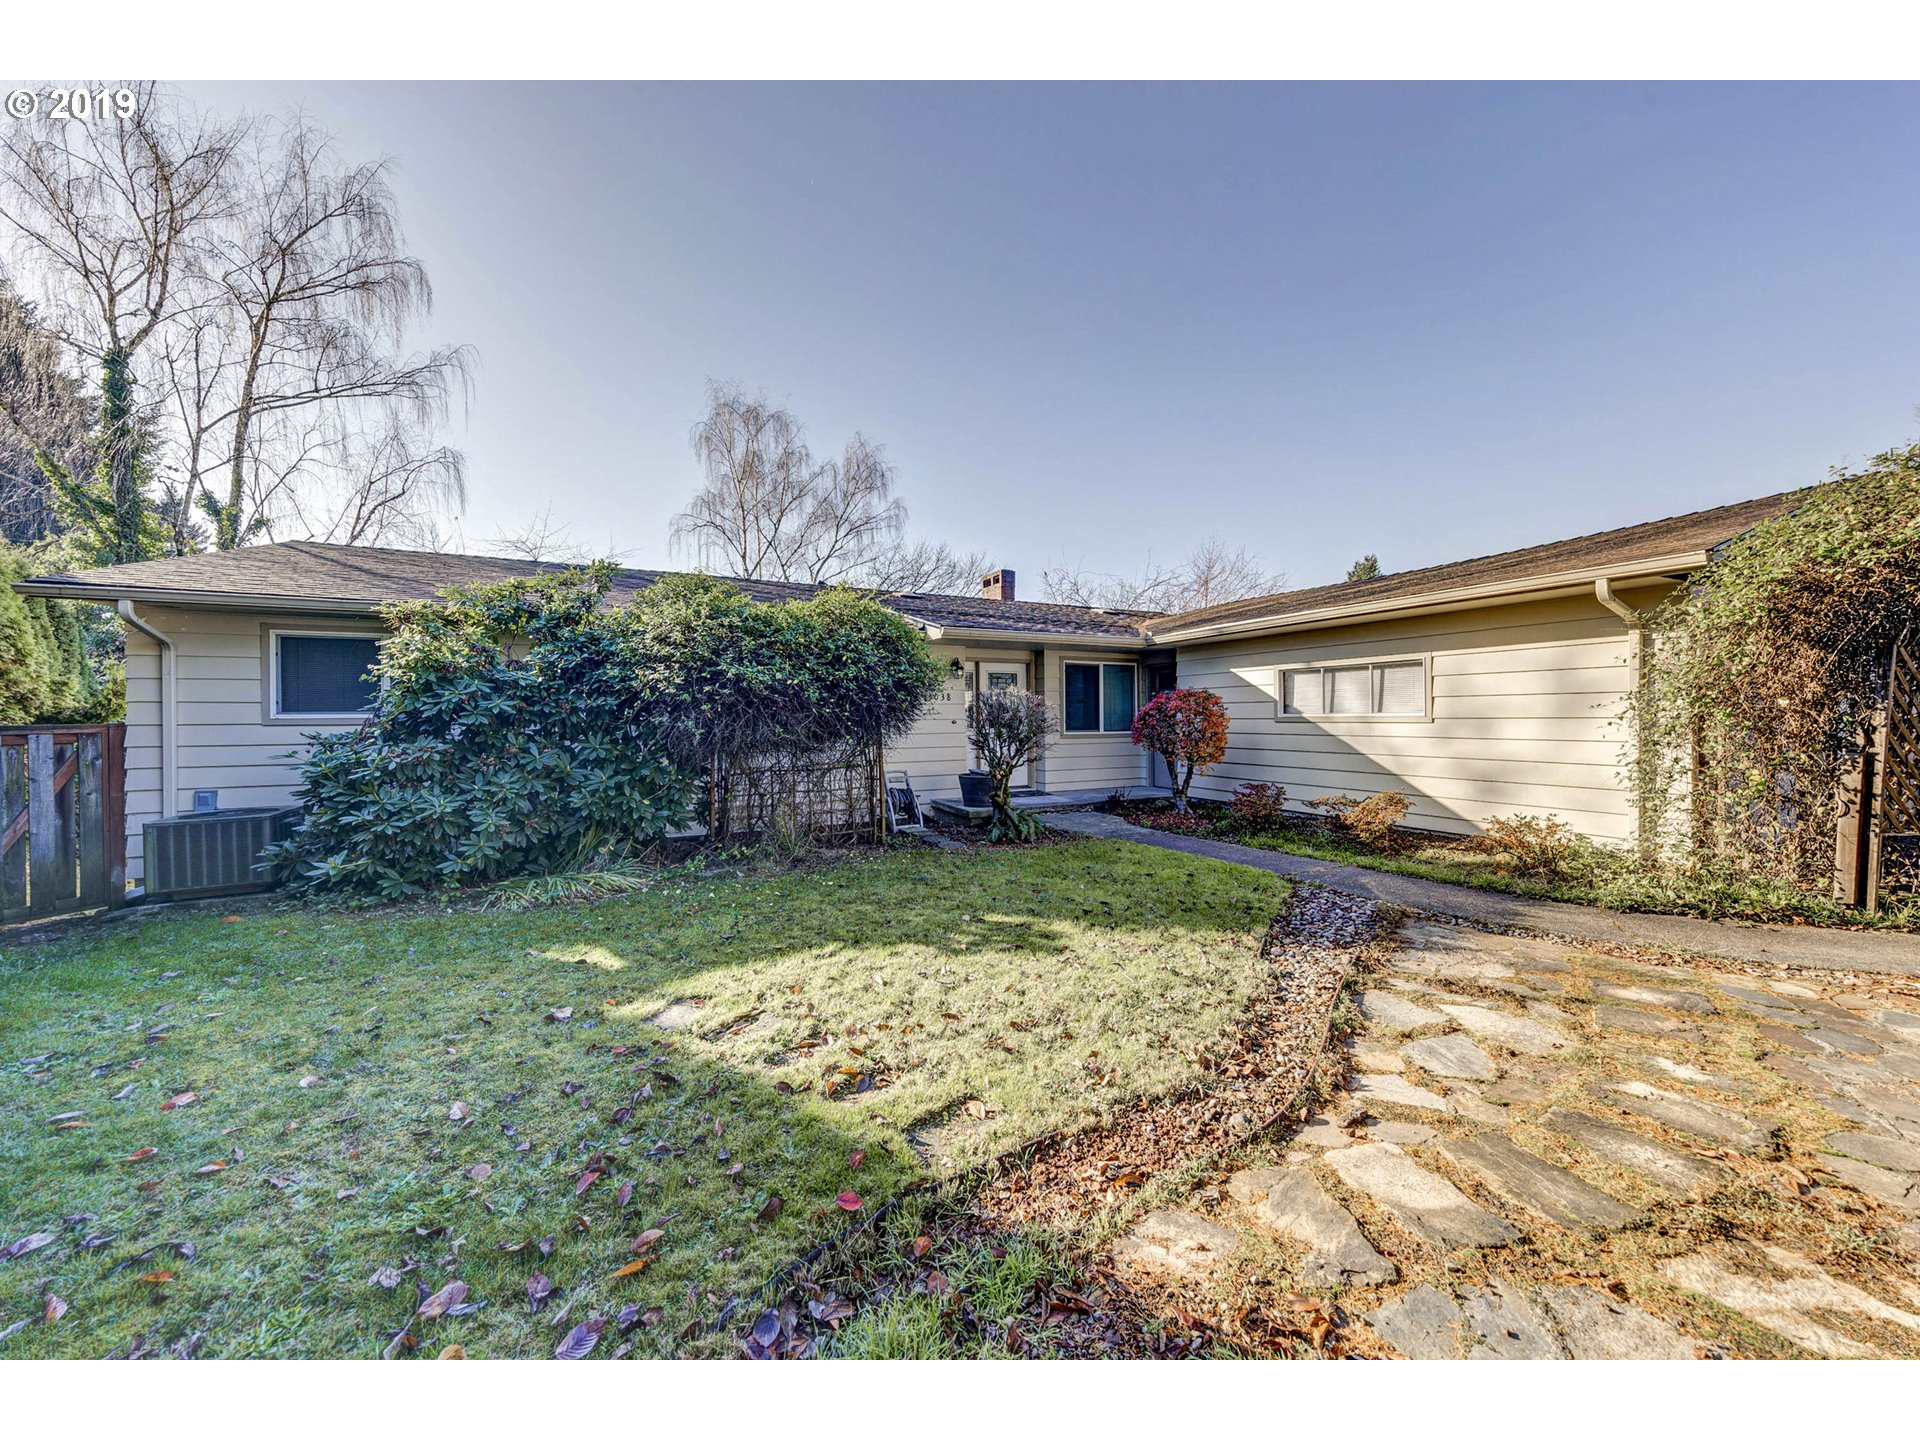 Beautiful Daylight Ranch mid-century home located in a quiet neighborhood, with 6 Bedrooms 3 Baths, fireplace in both living room and family room. Minutes away from Mall 205, restaurants, parks and school.